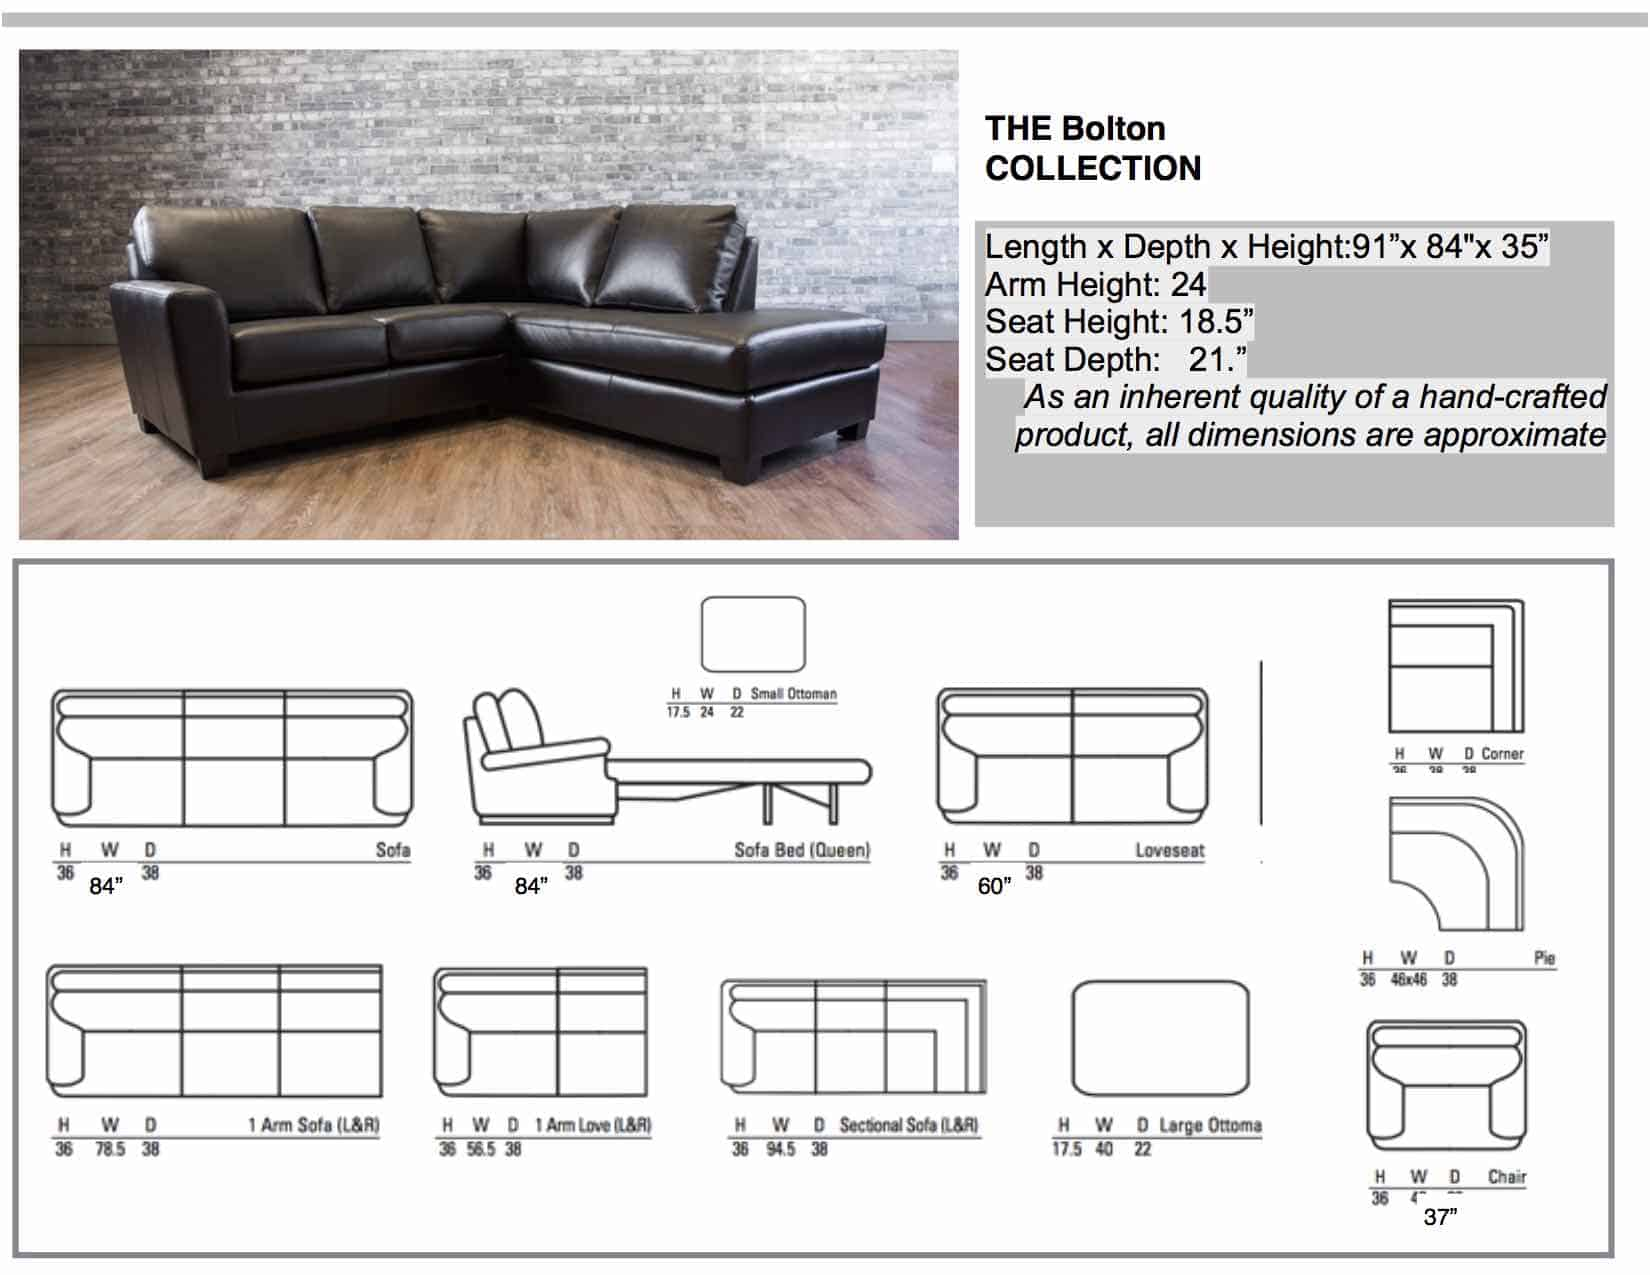 ... Leather Sectionals The Bolton Collection ...